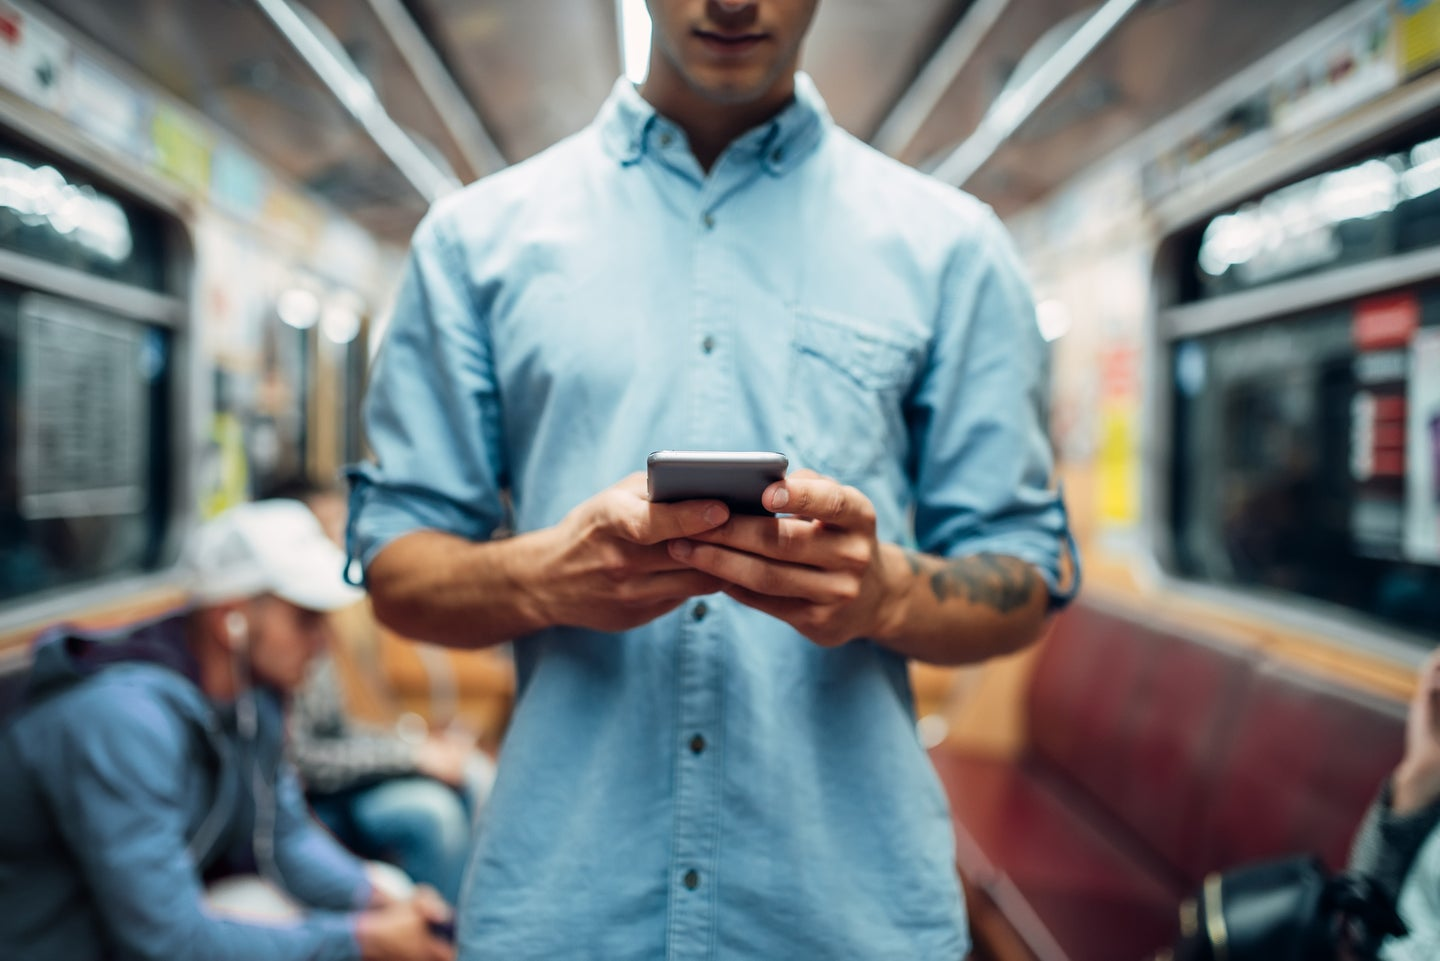 a man holds a phone in his hands on the subway